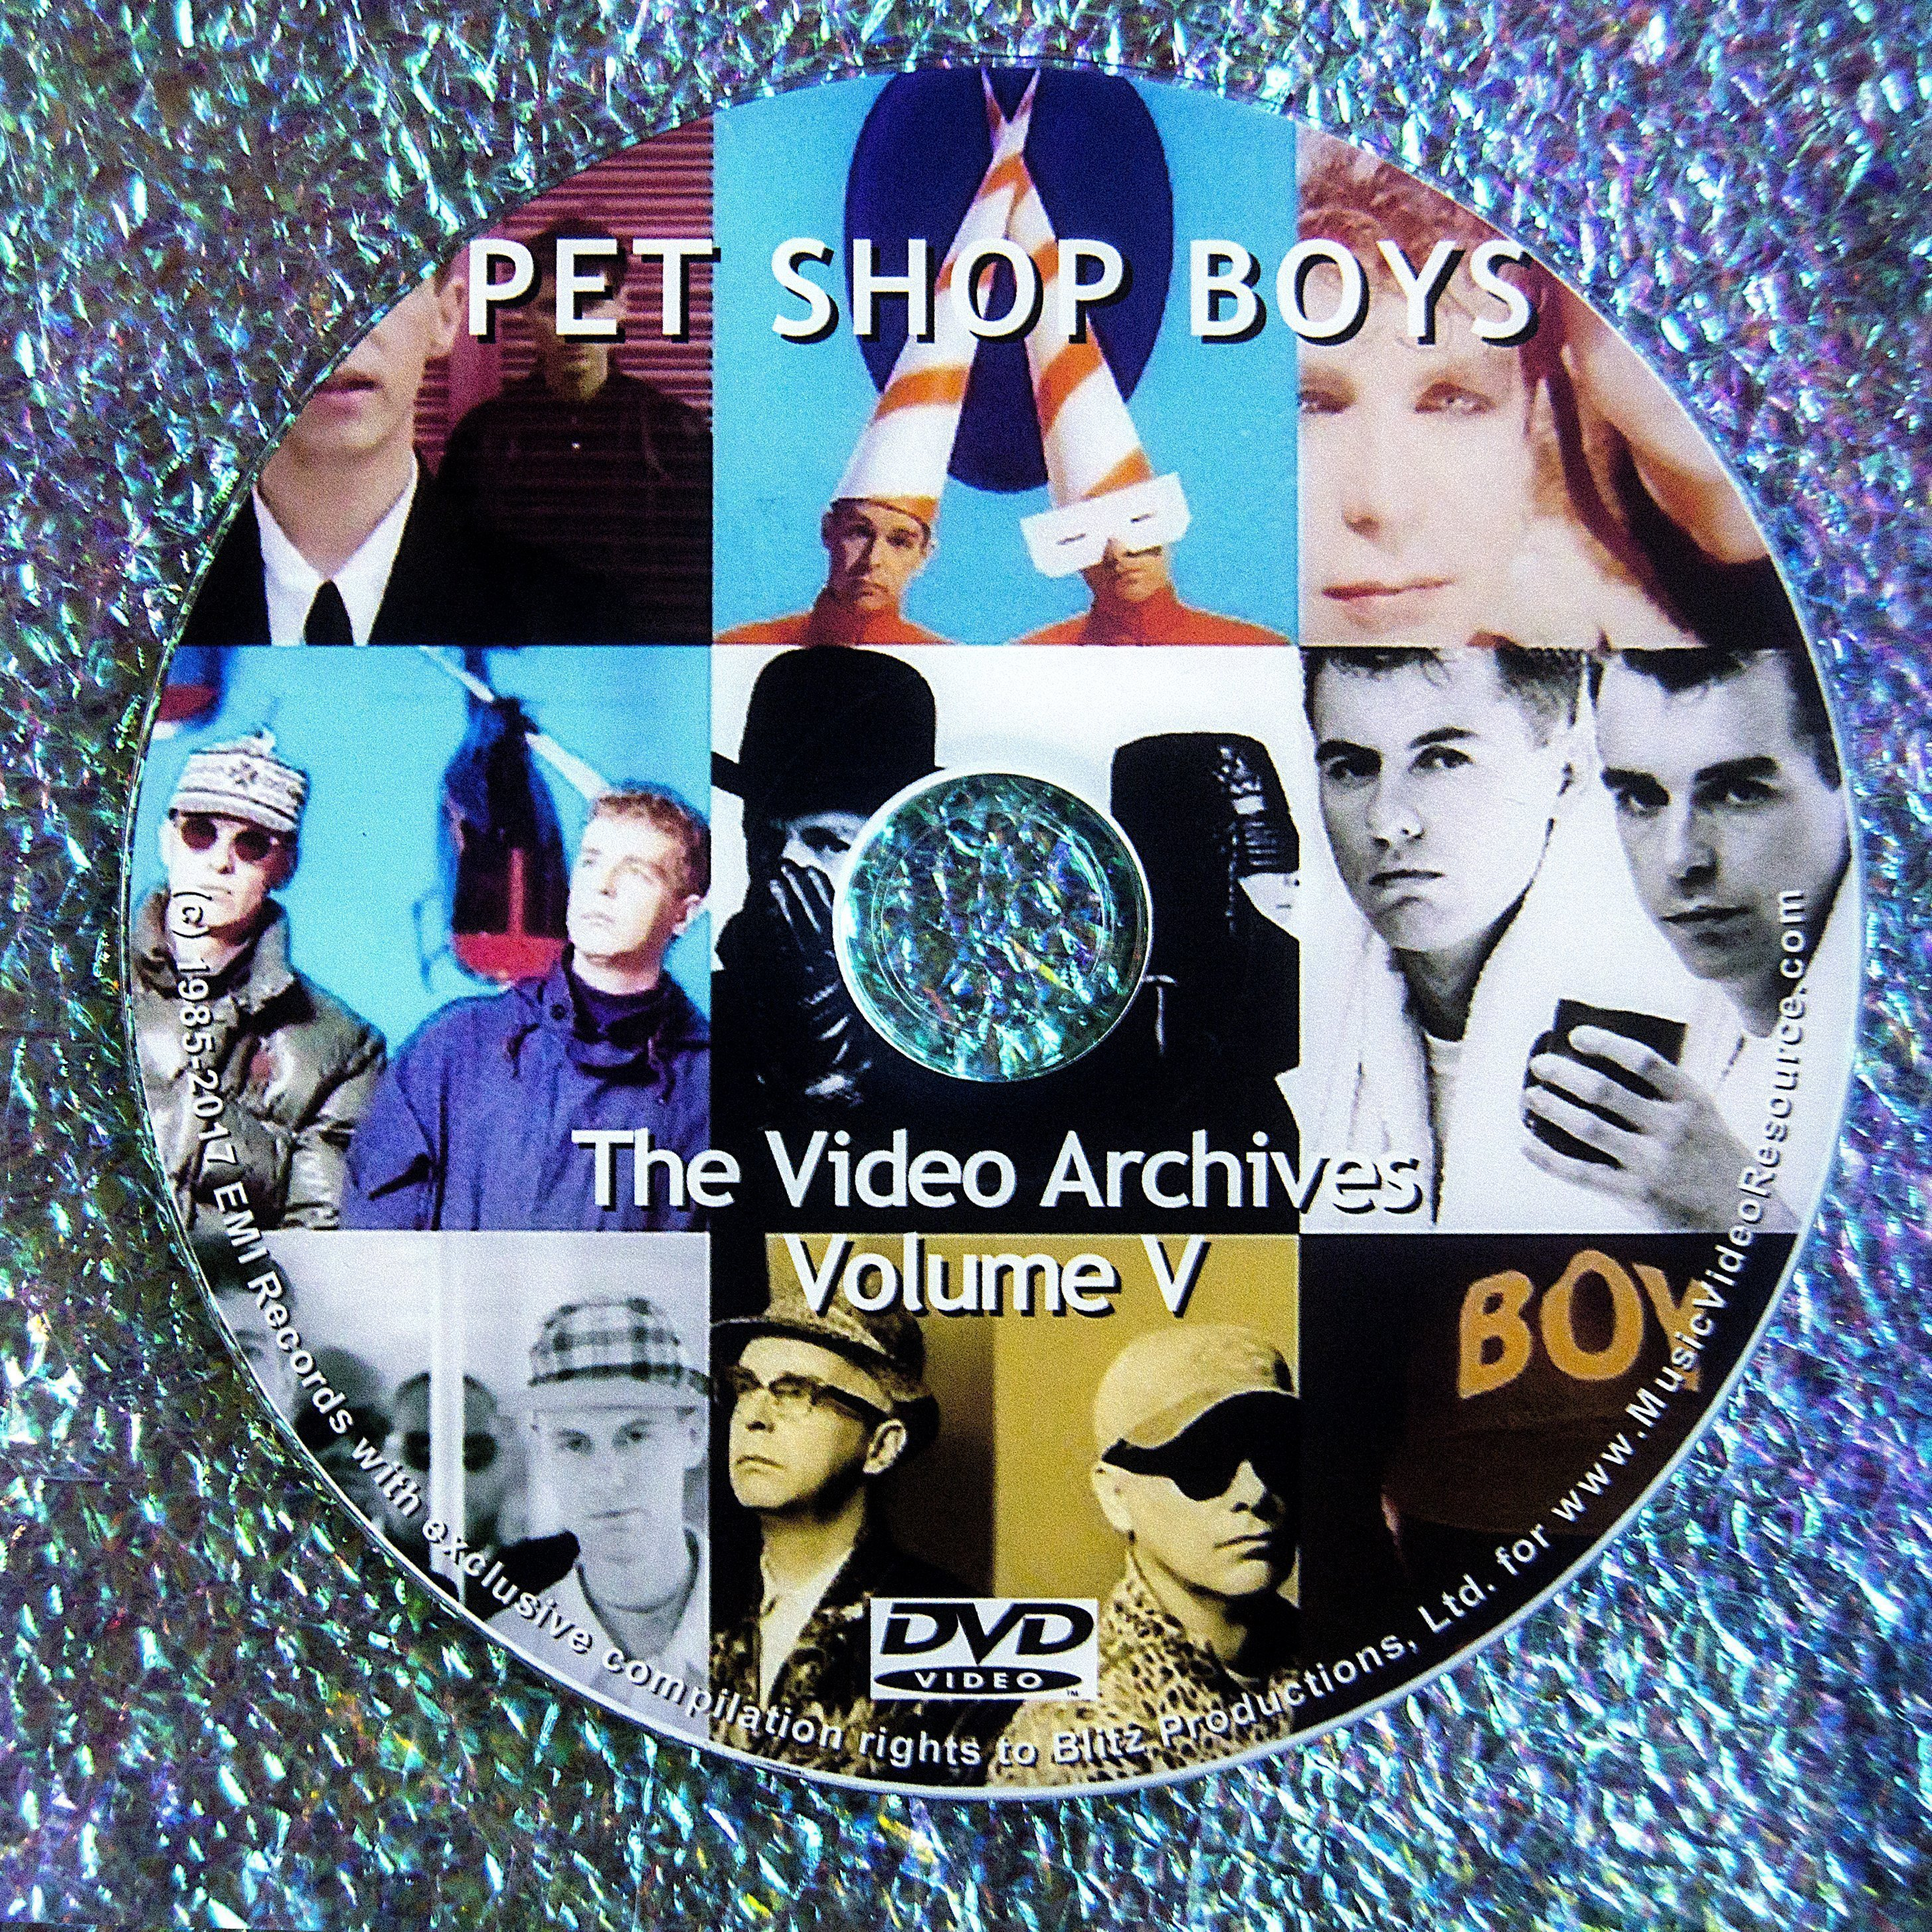 PET SHOP BOYS VIDEO ARCHIVES 2011 VOLUME V